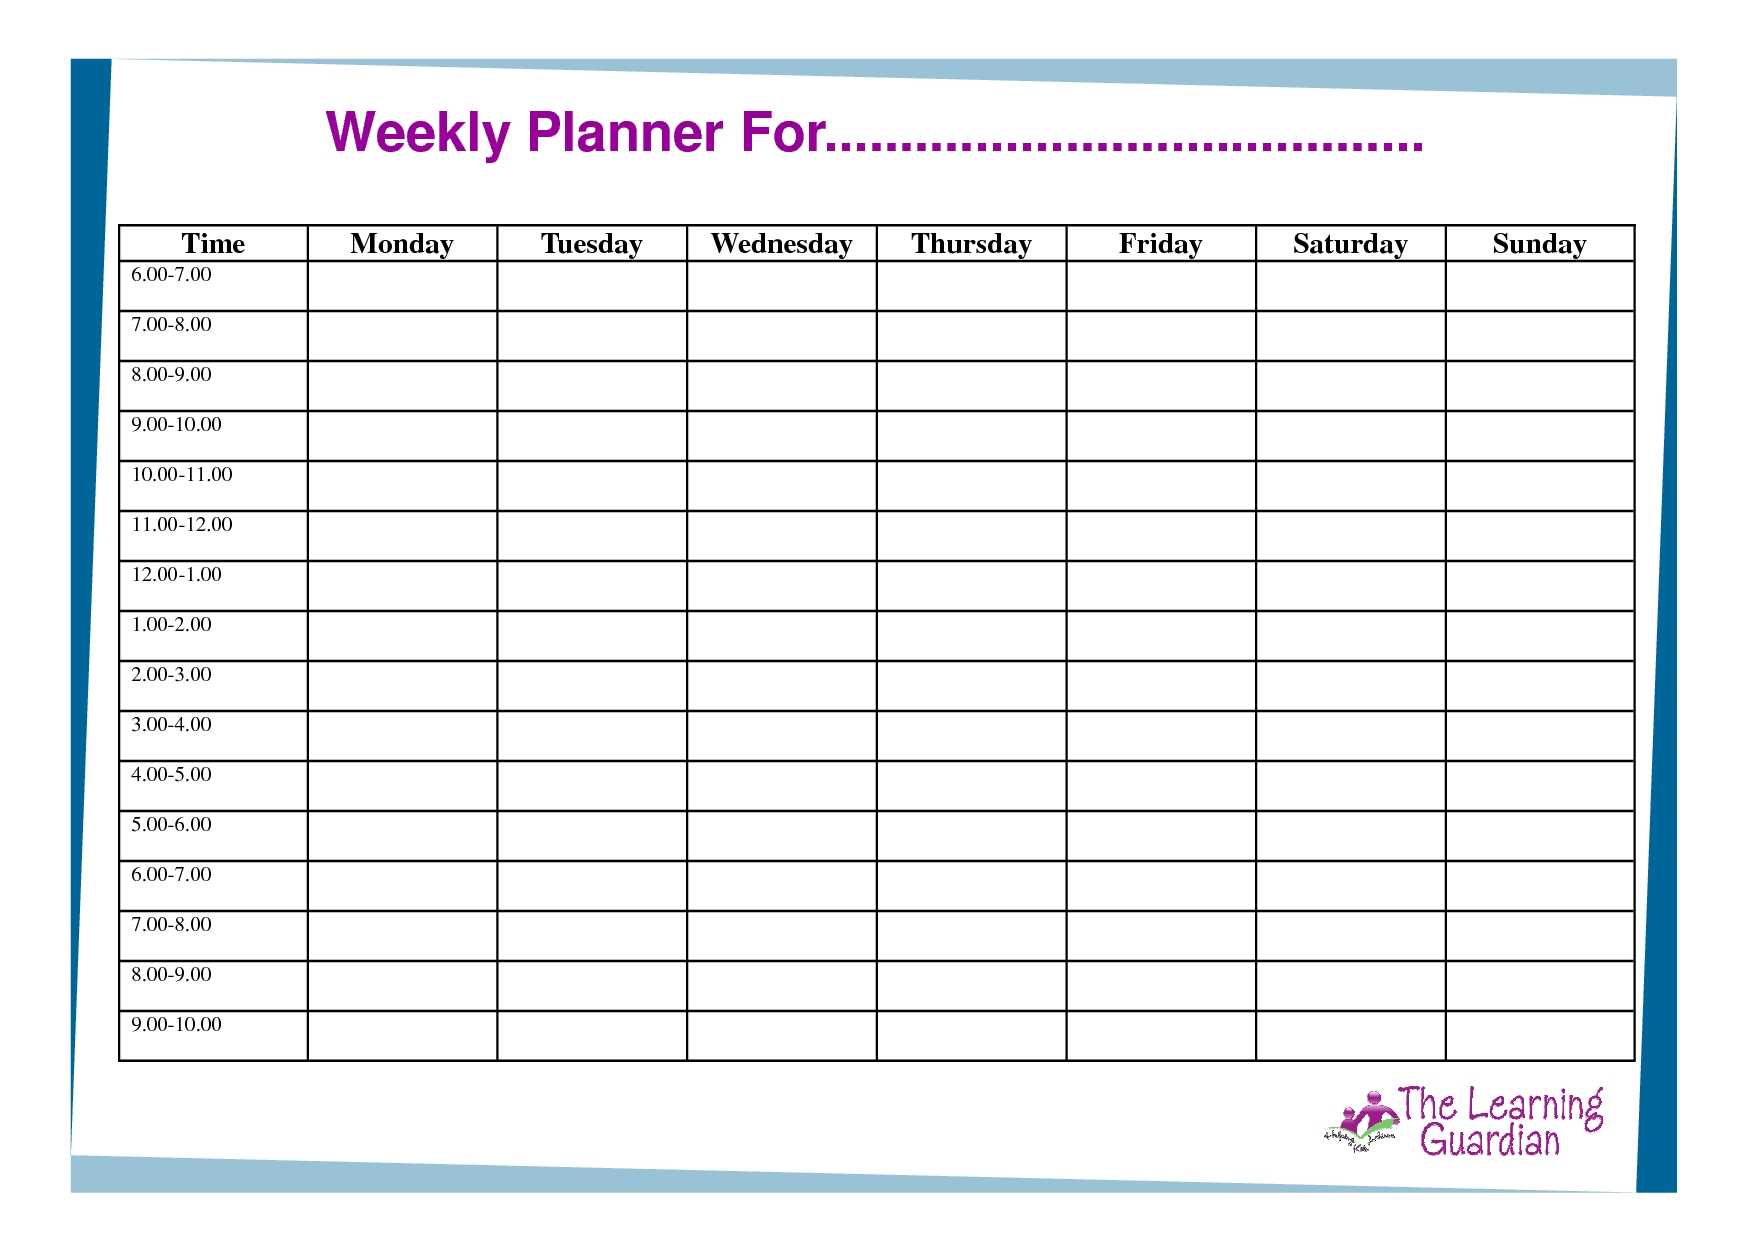 Schedule Template Monday Through Iday Weekly Calendar Ee Printable intended for Monday Through Friday Calendar With Times